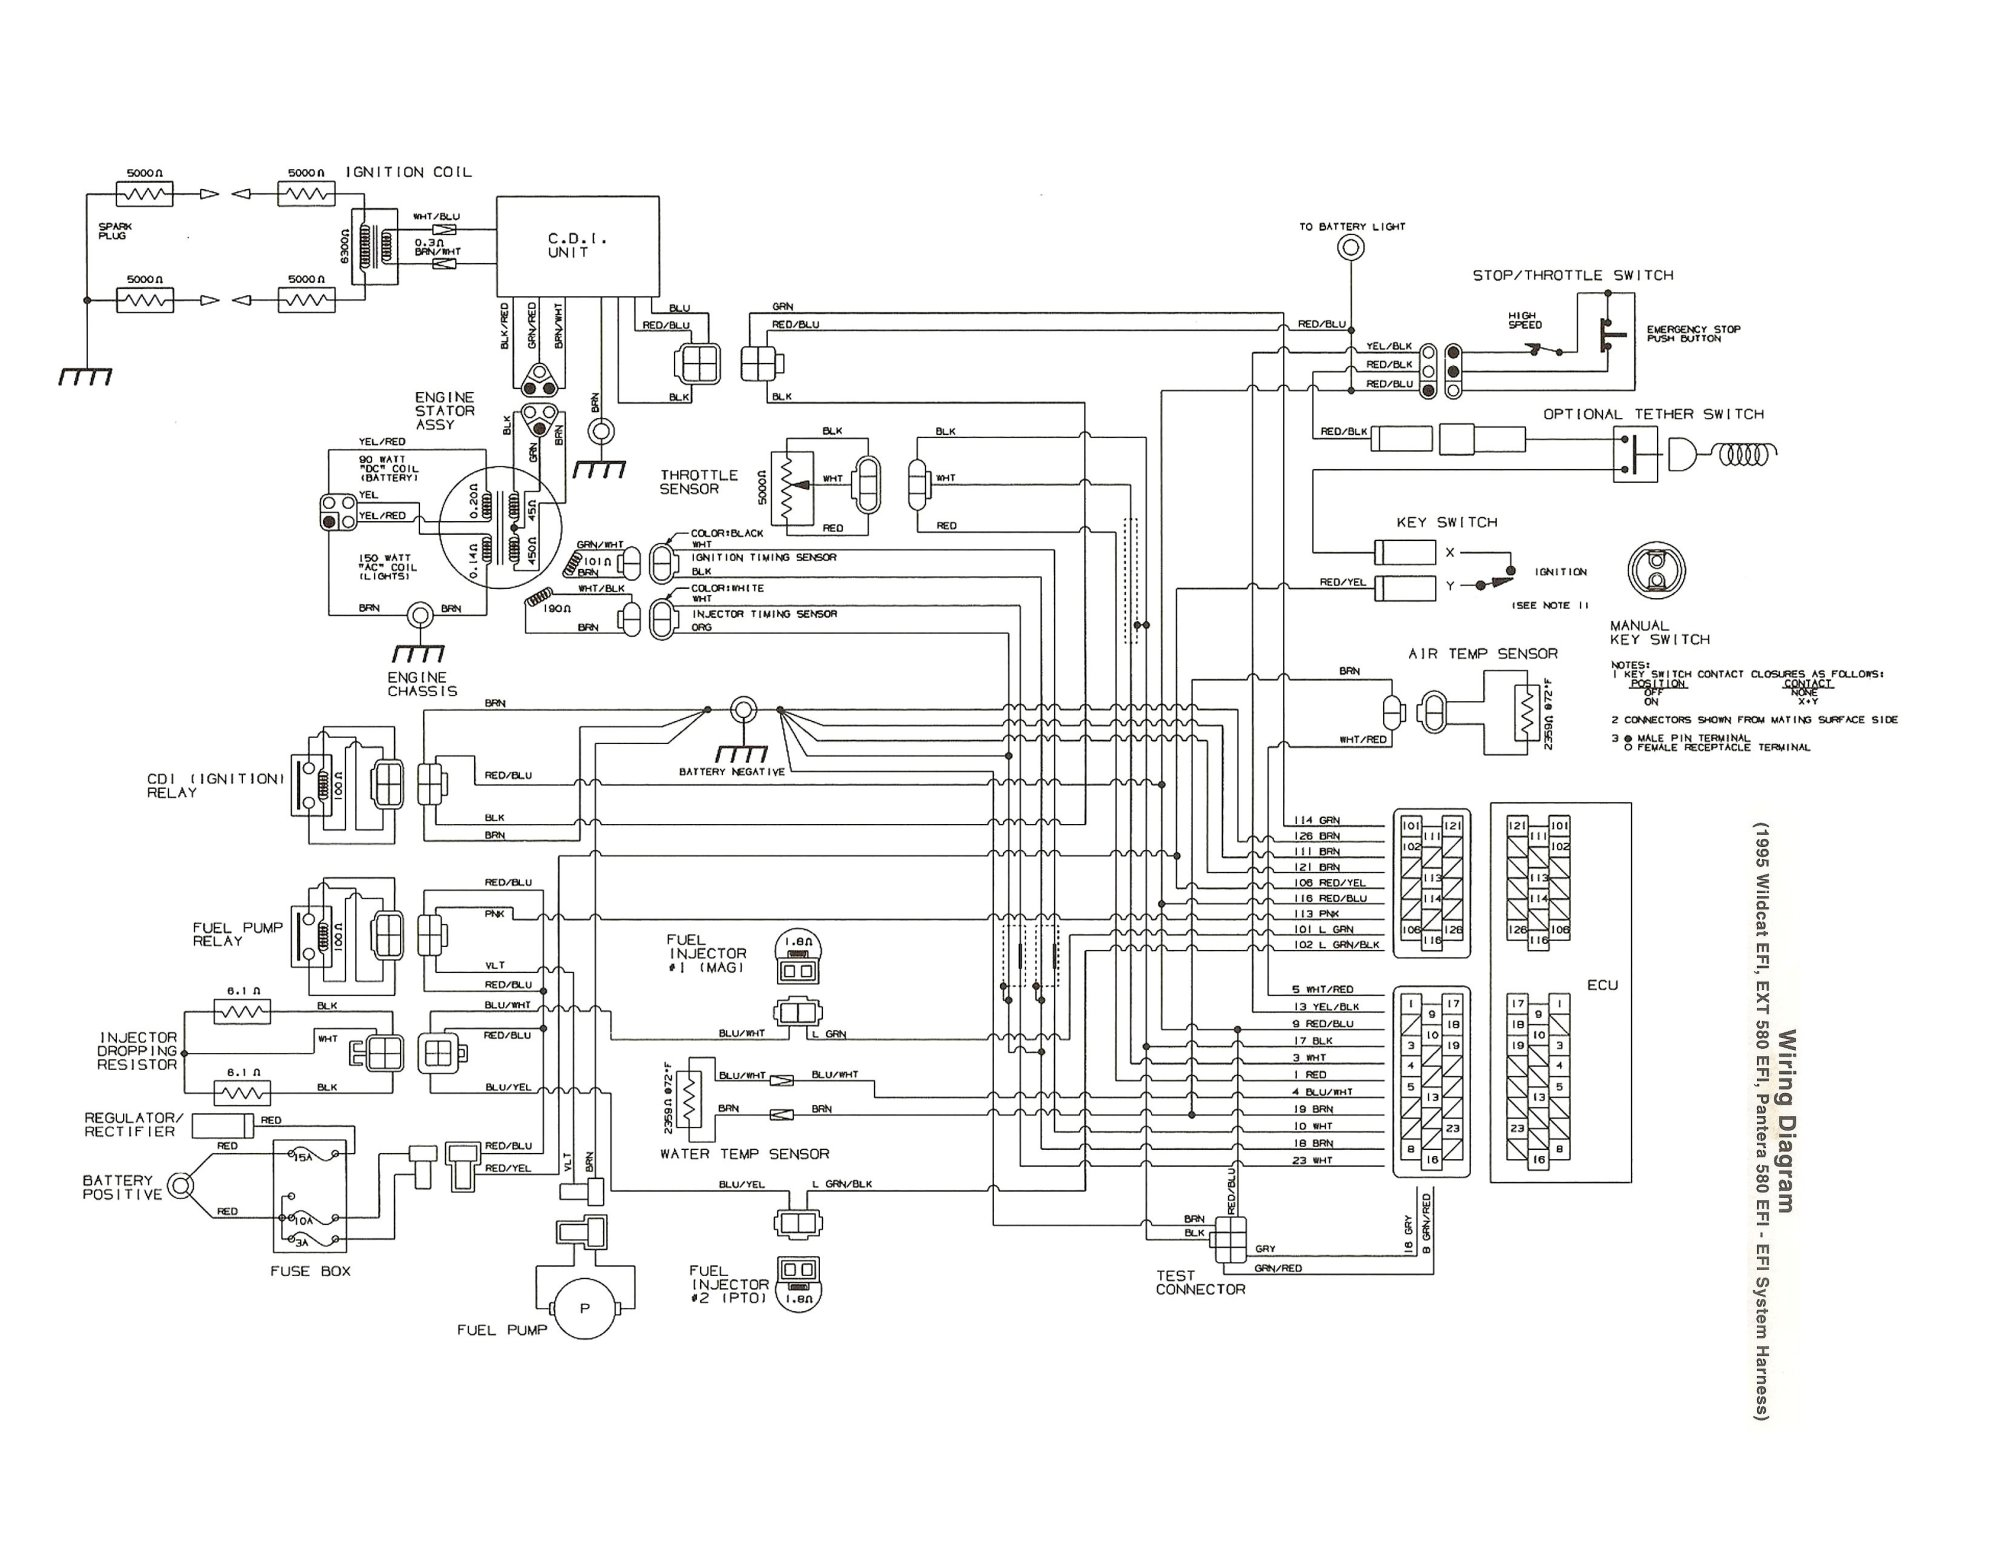 hight resolution of 580 ext wiring diagrams wiring diagram source 1995 zr 580 efi wiring diagram zr 580 wiring diagram